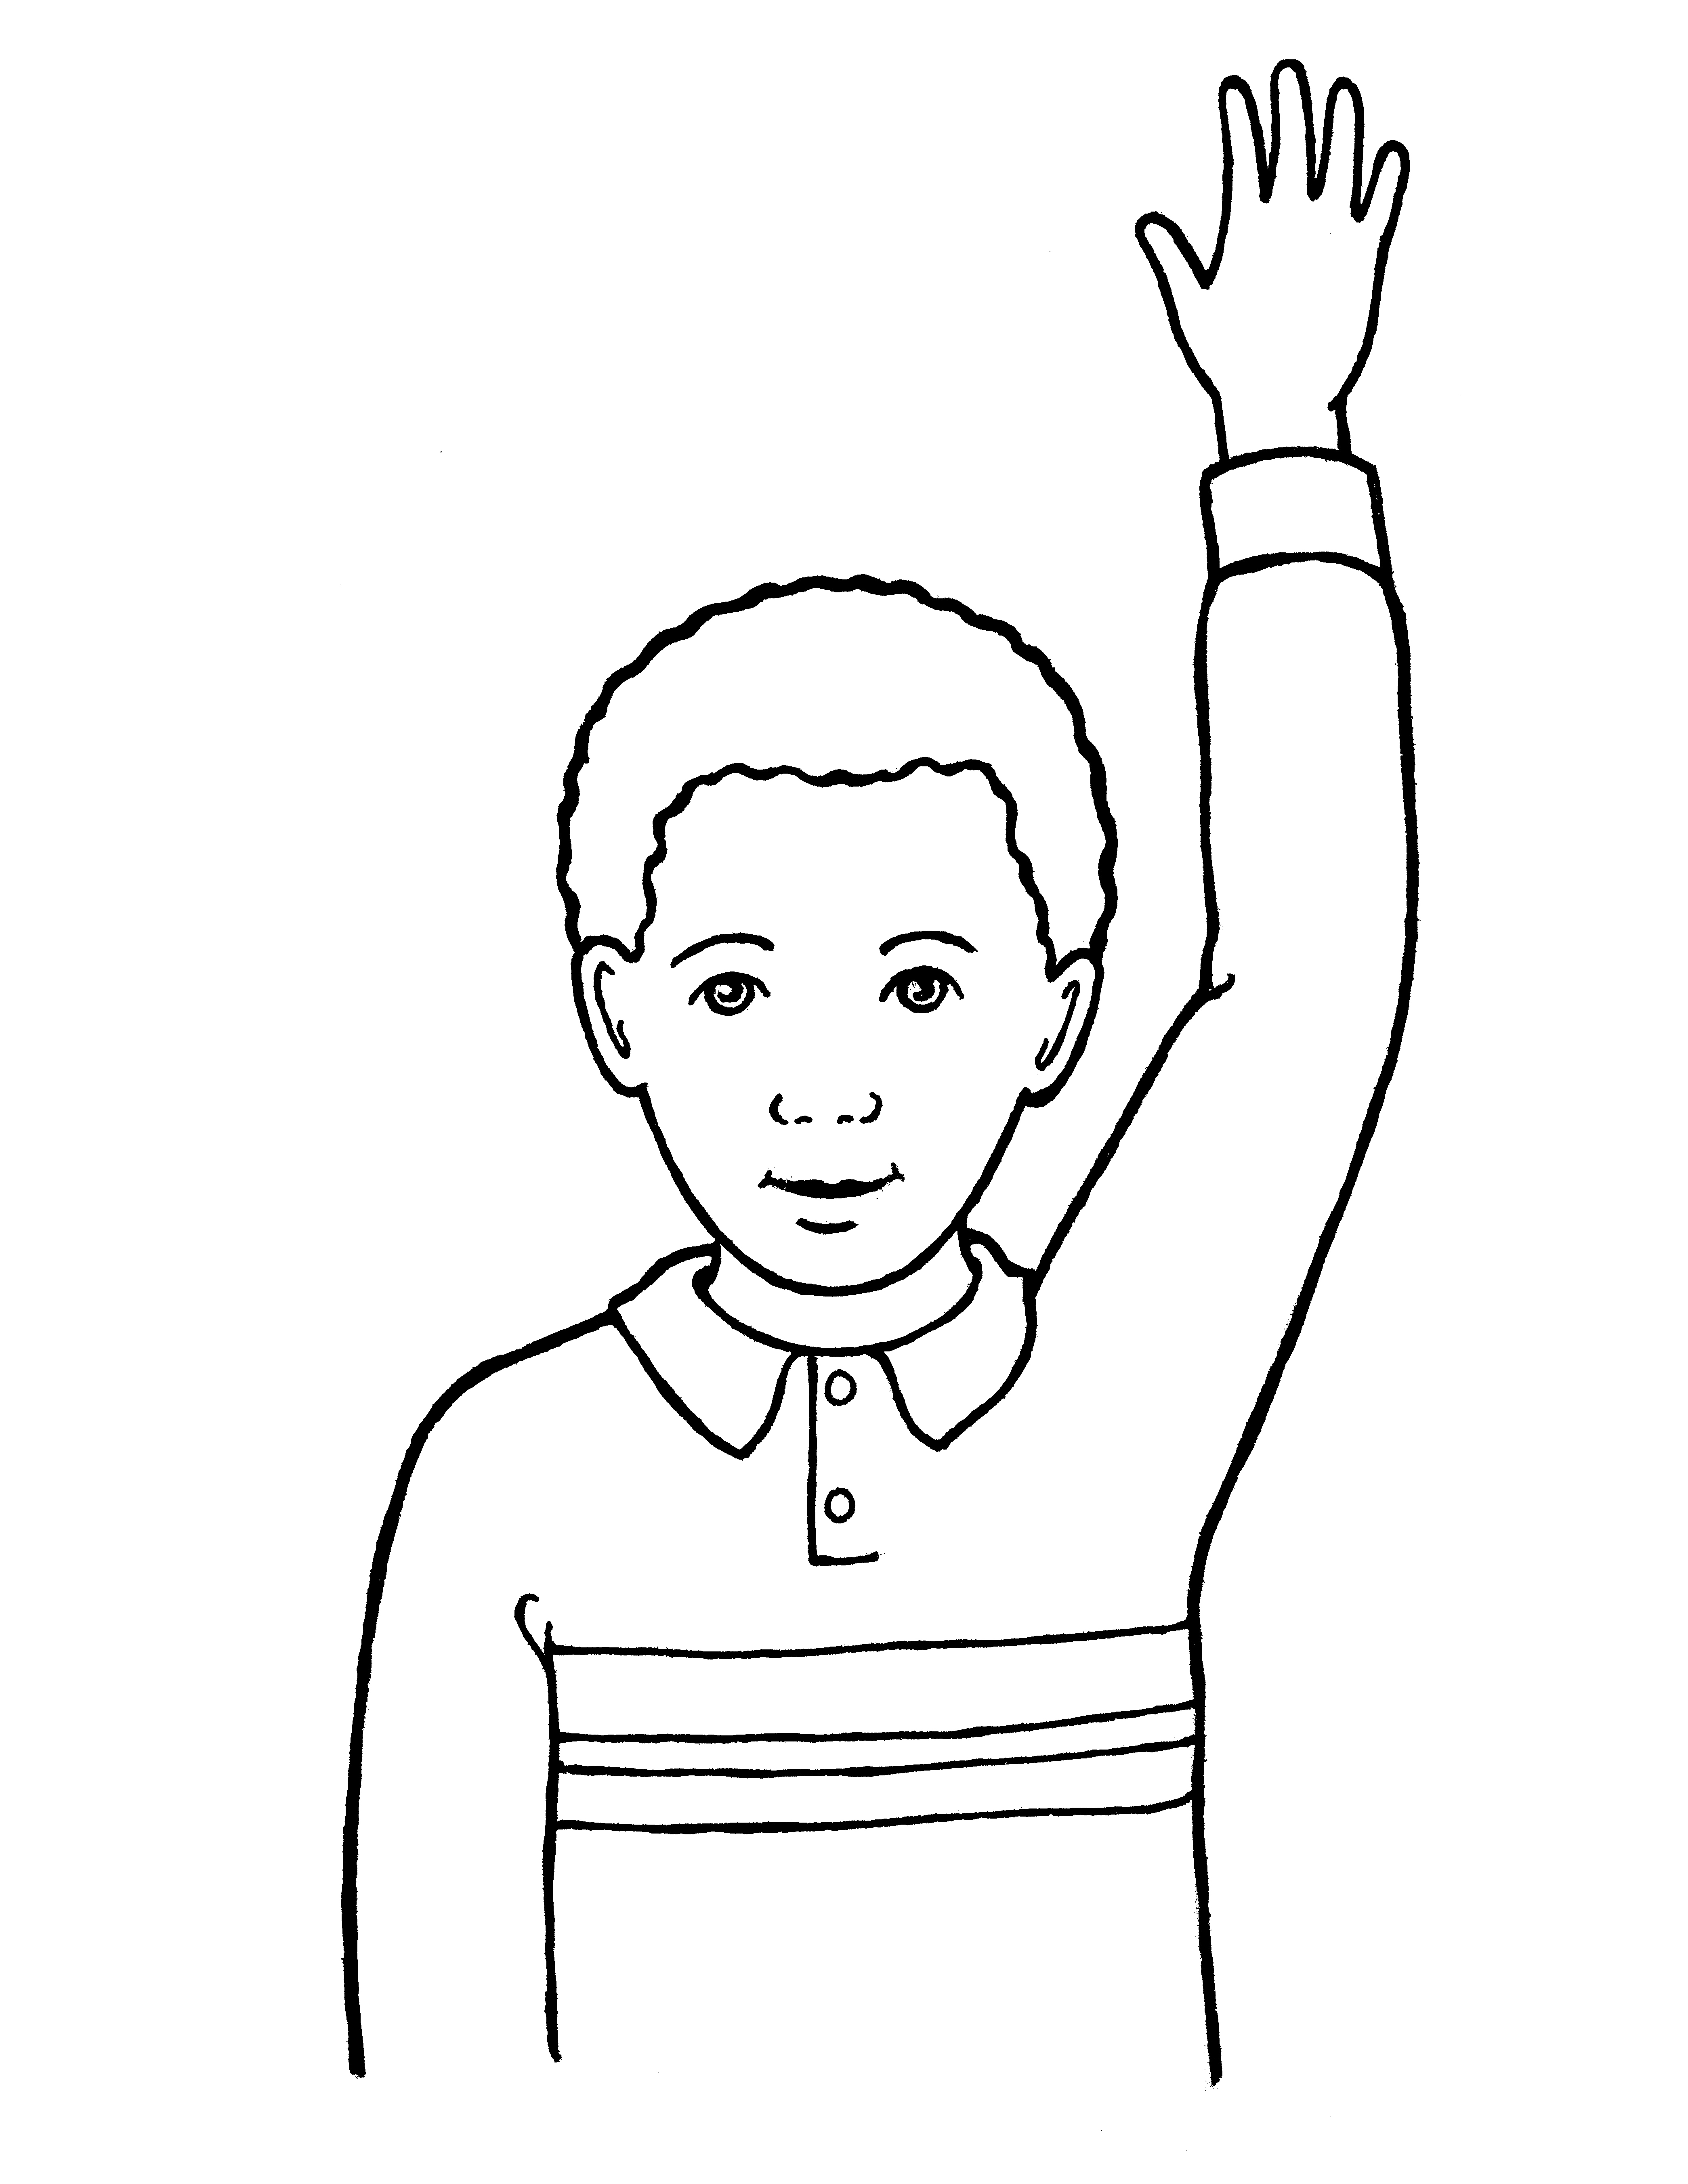 An illustration of a young boy reverently raising his hand.